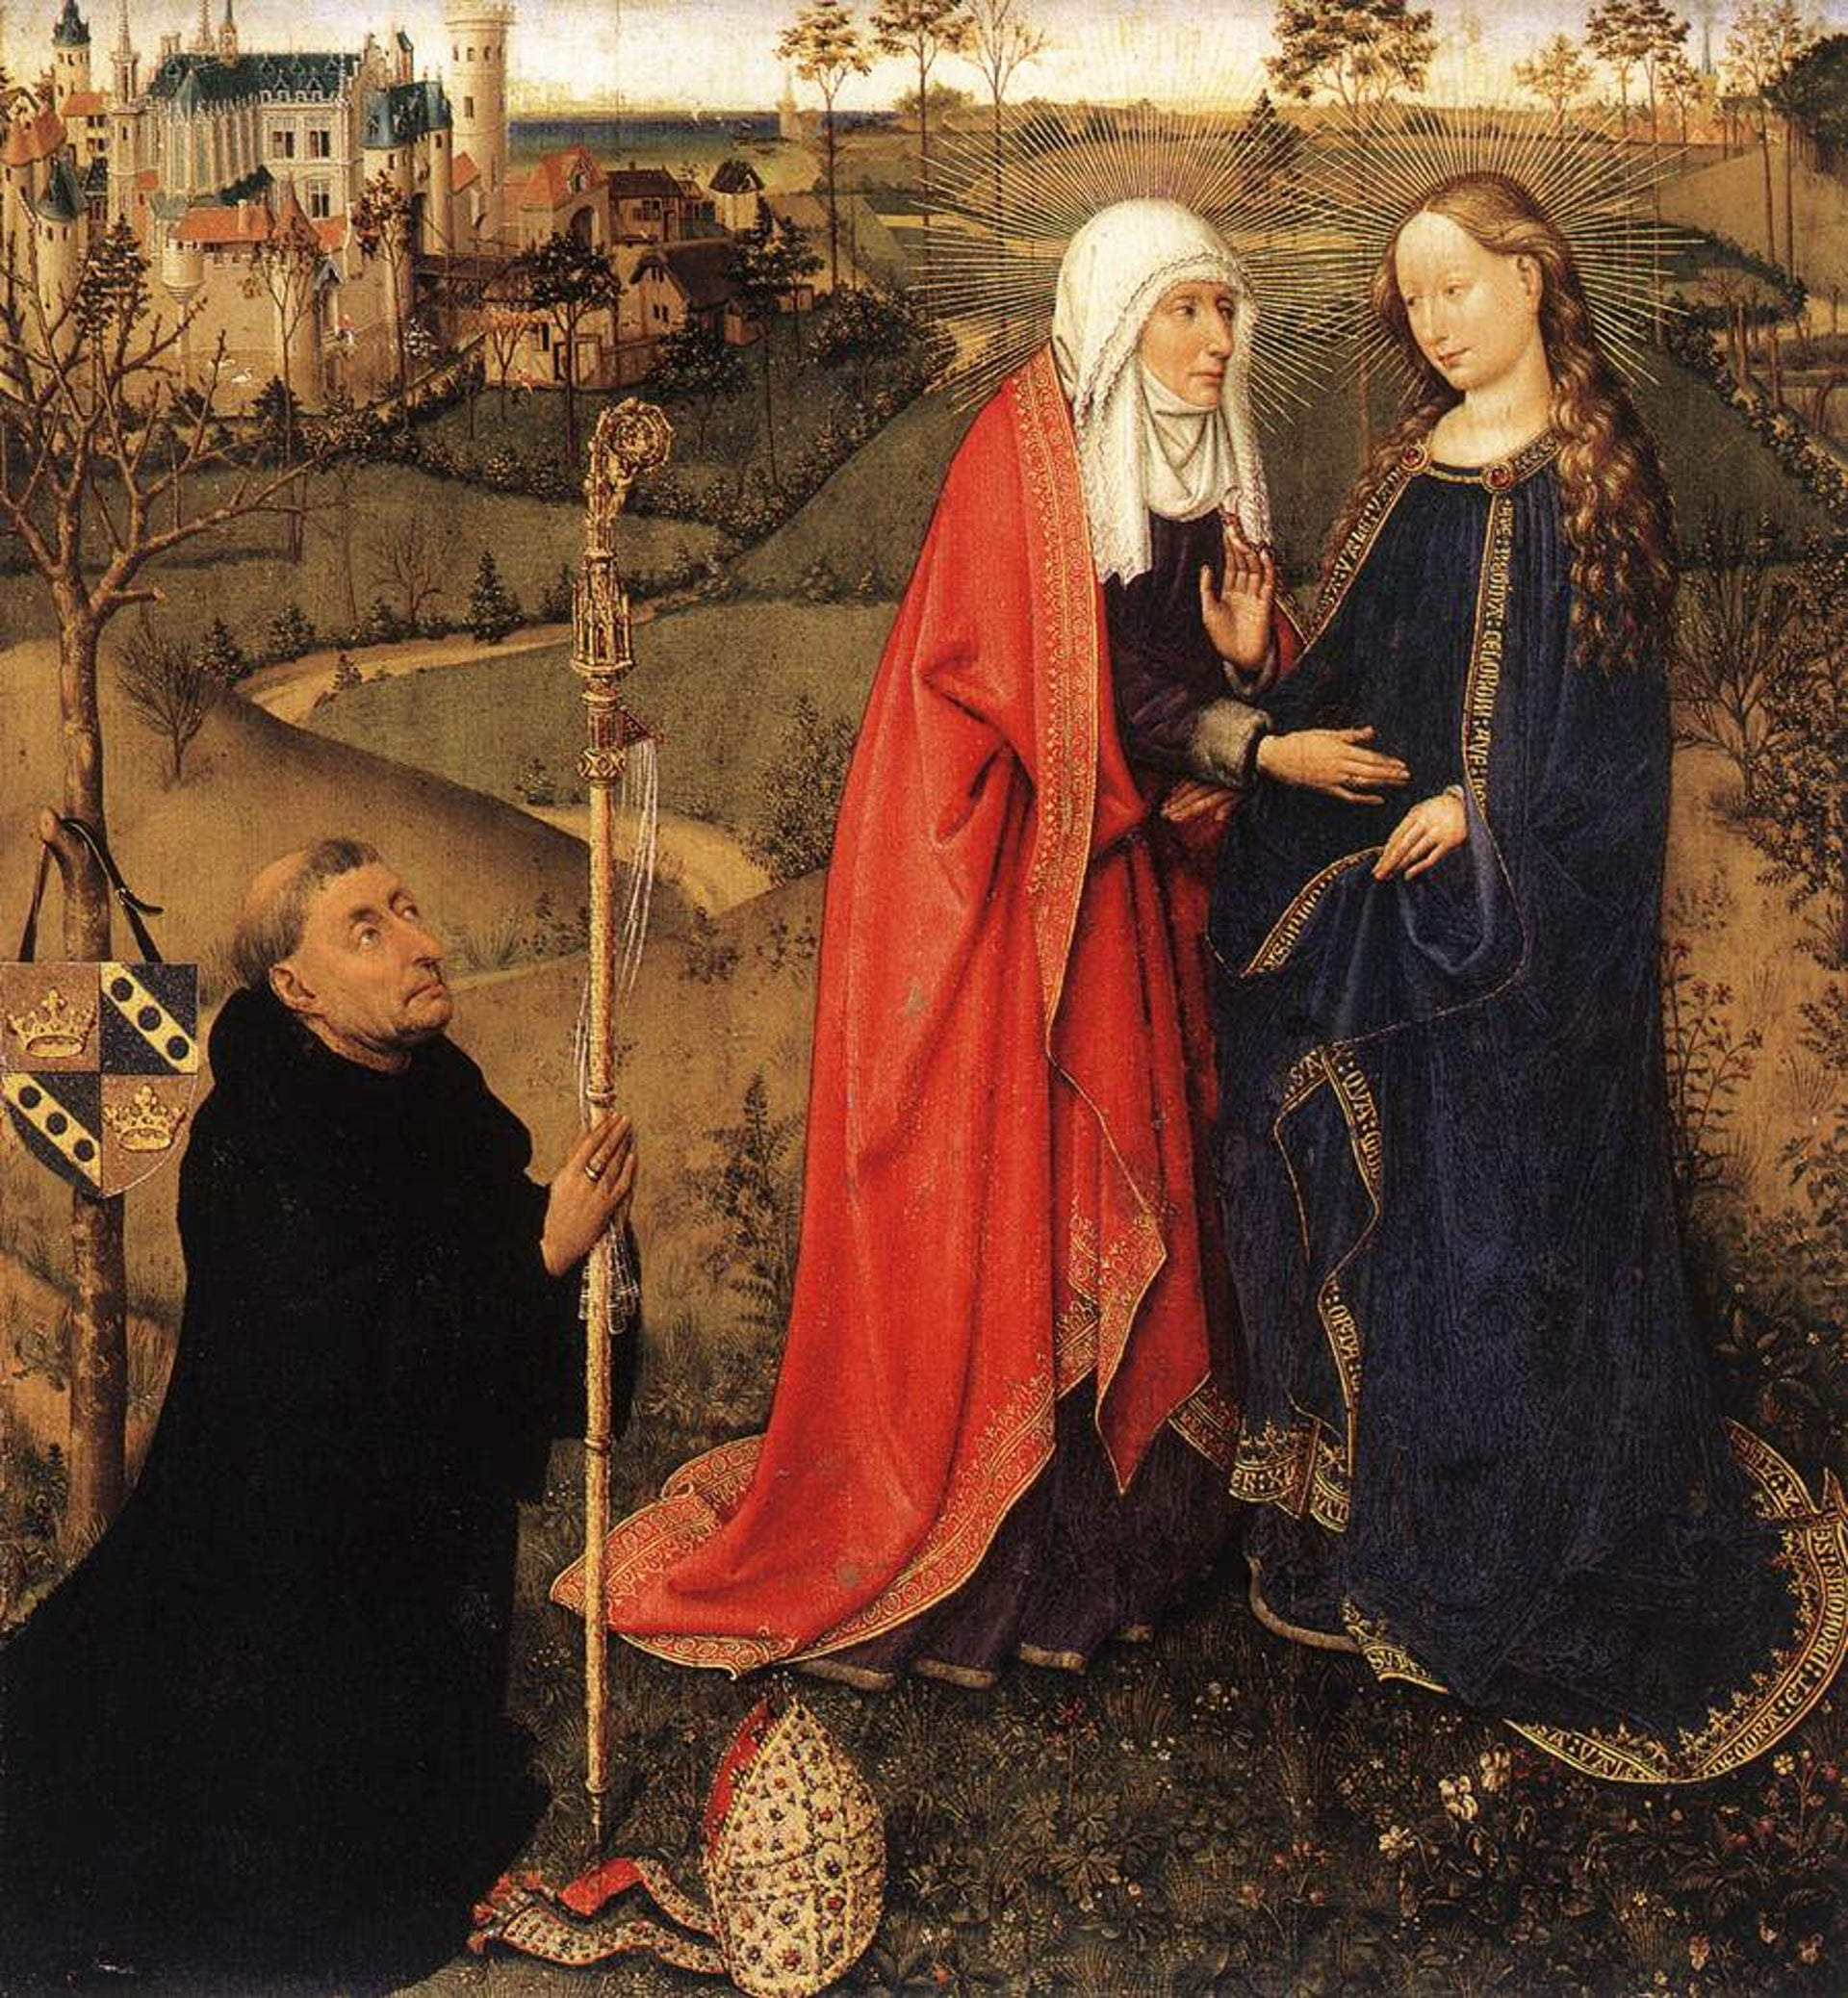 The Visitation, from Altarpiece of the Virgin by Jacques Daret, 1434-1435.